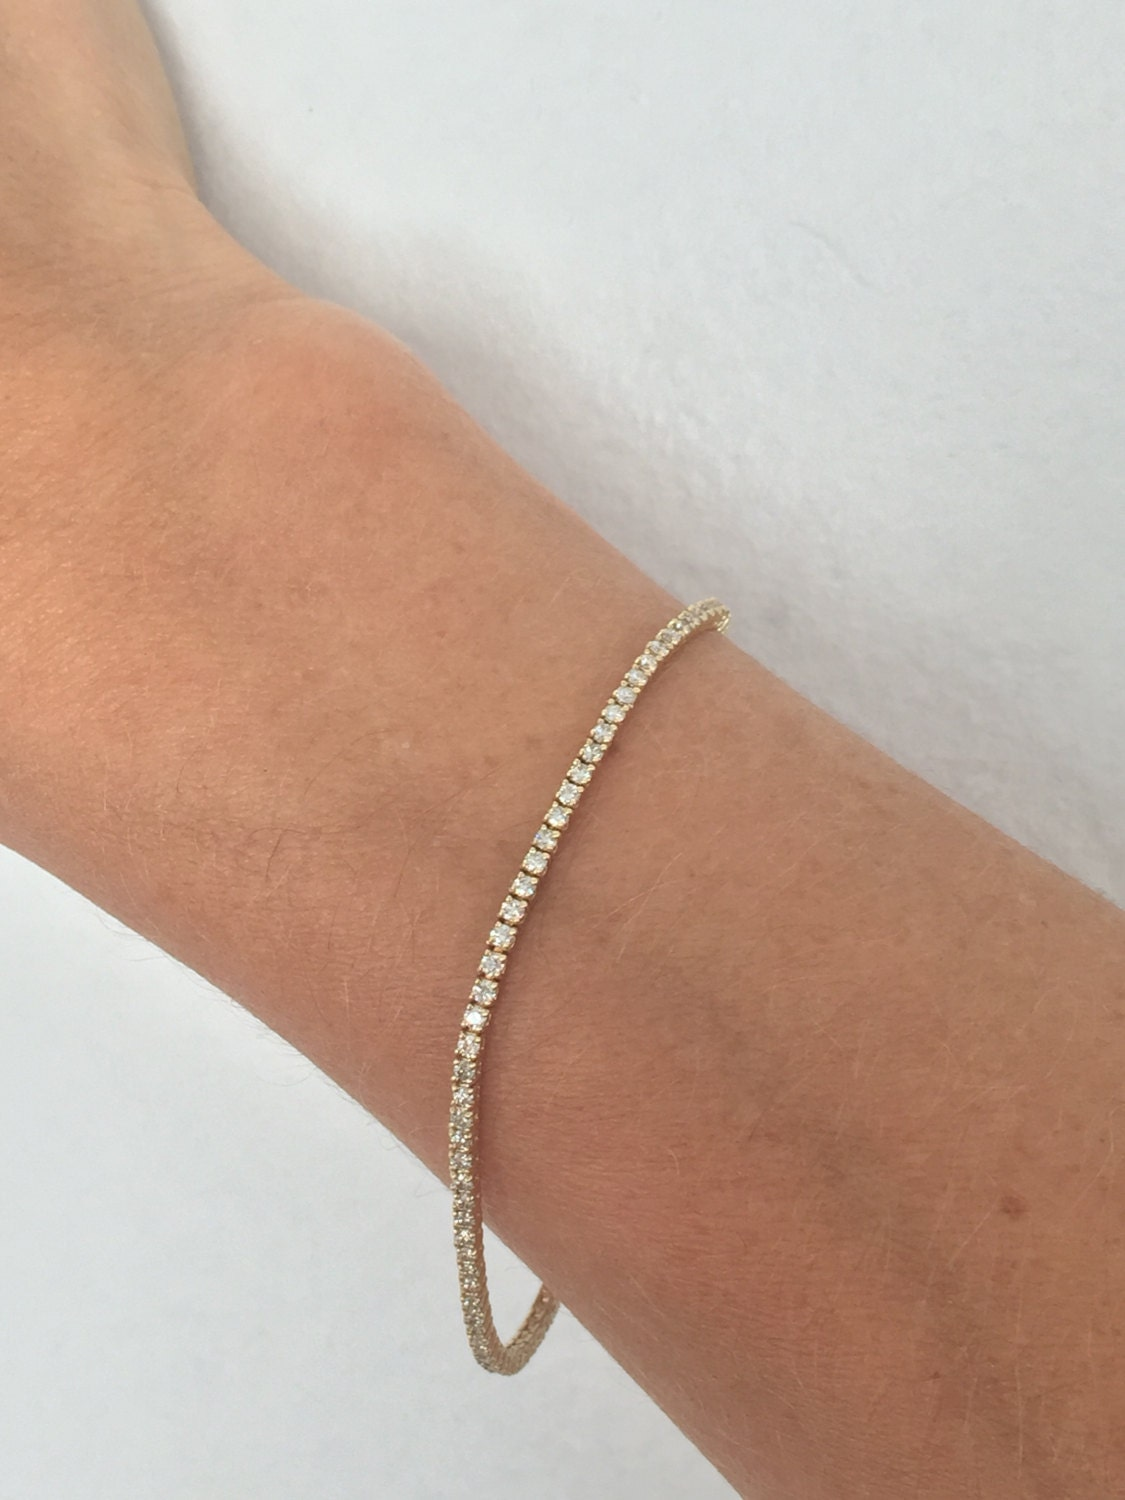 Diamond Anklet With Toe Ring Lc00035 In Anklets From: Diamond Tennis Bracelet Tennis Bracelet Dainty Tennis